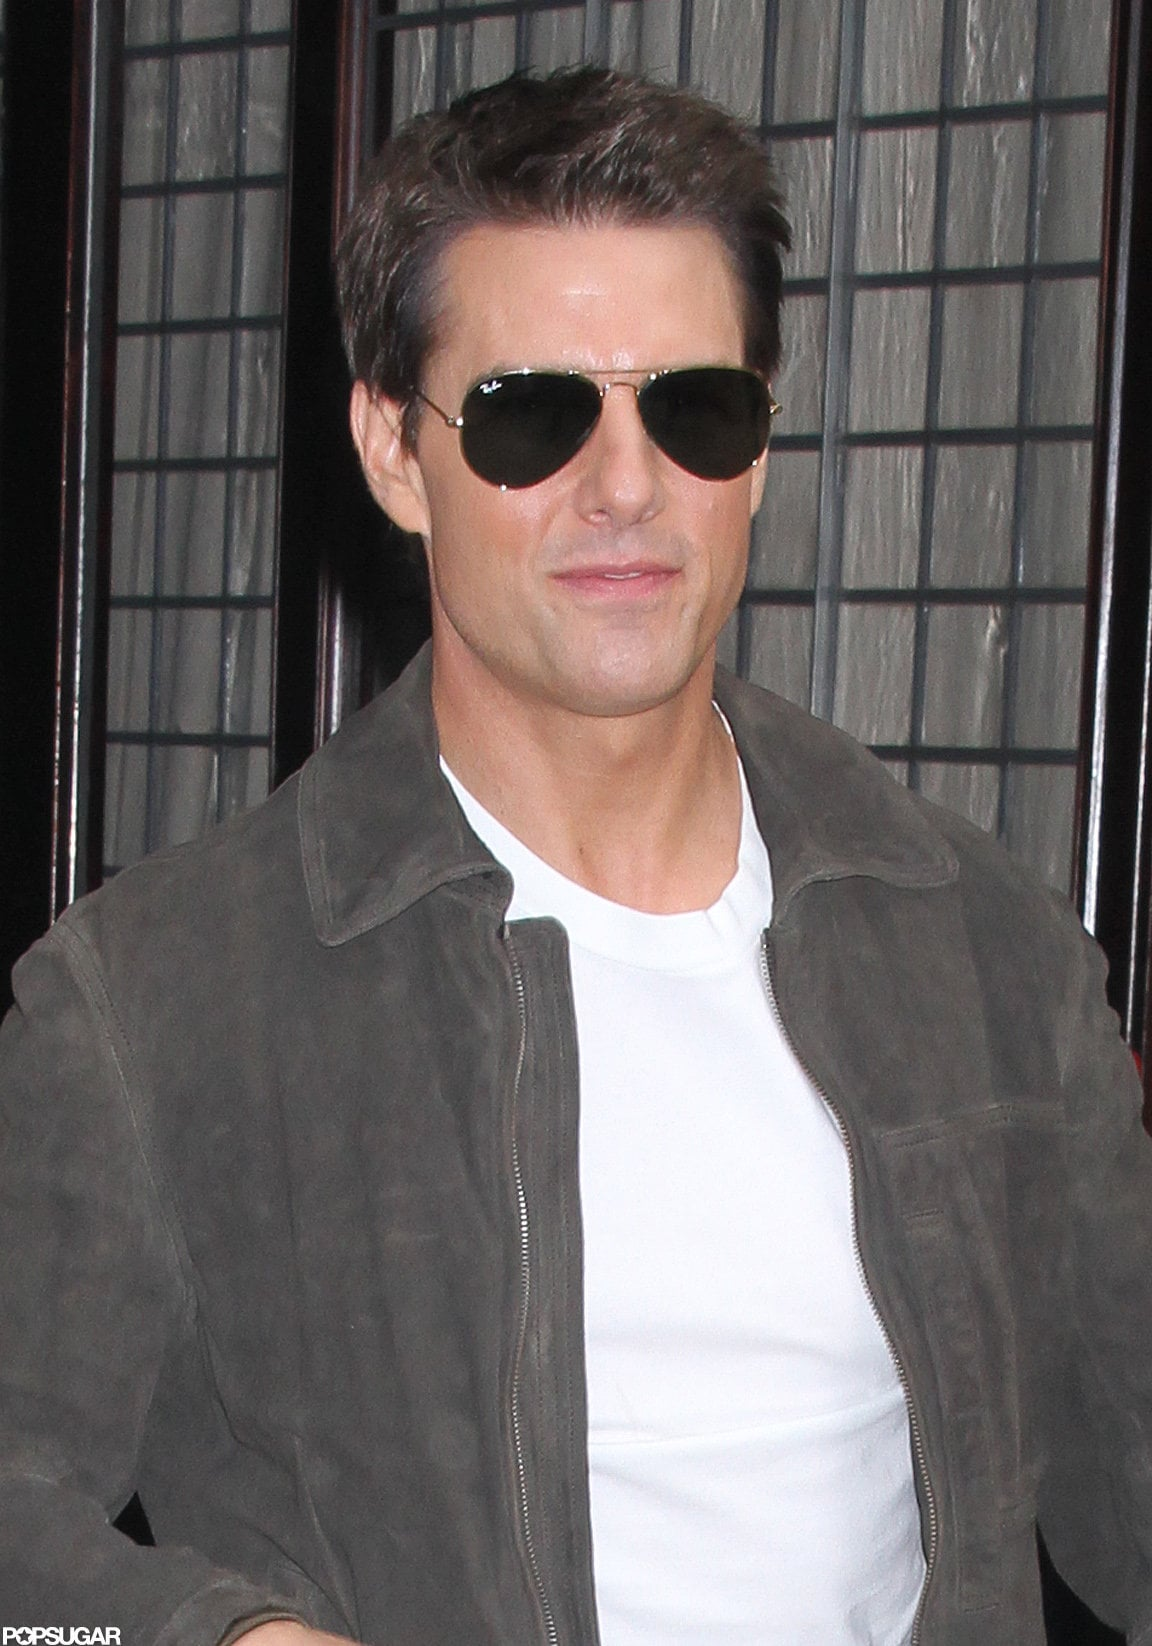 Tom Cruise rocked aviator shades in NYC.